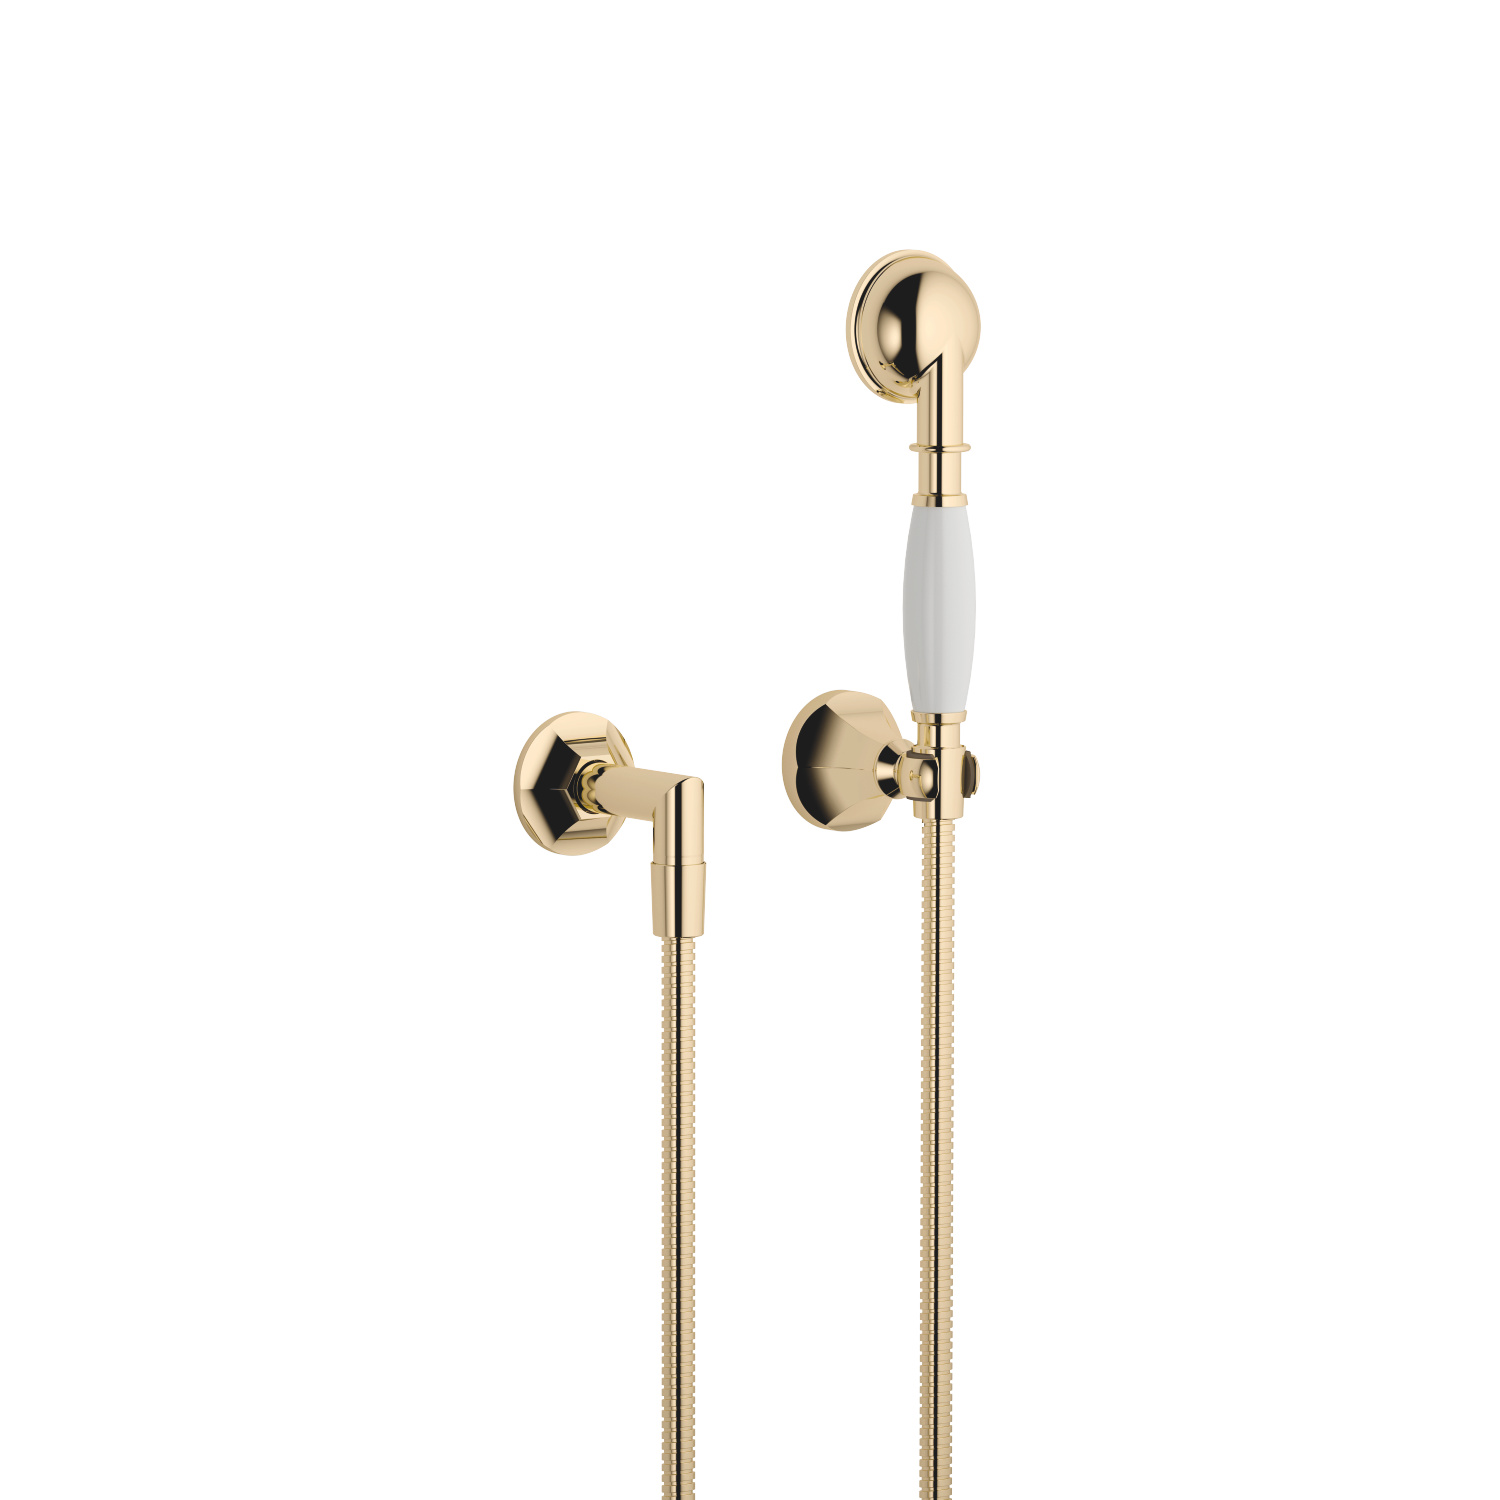 Hand shower set with individual rosettes - Durabrass